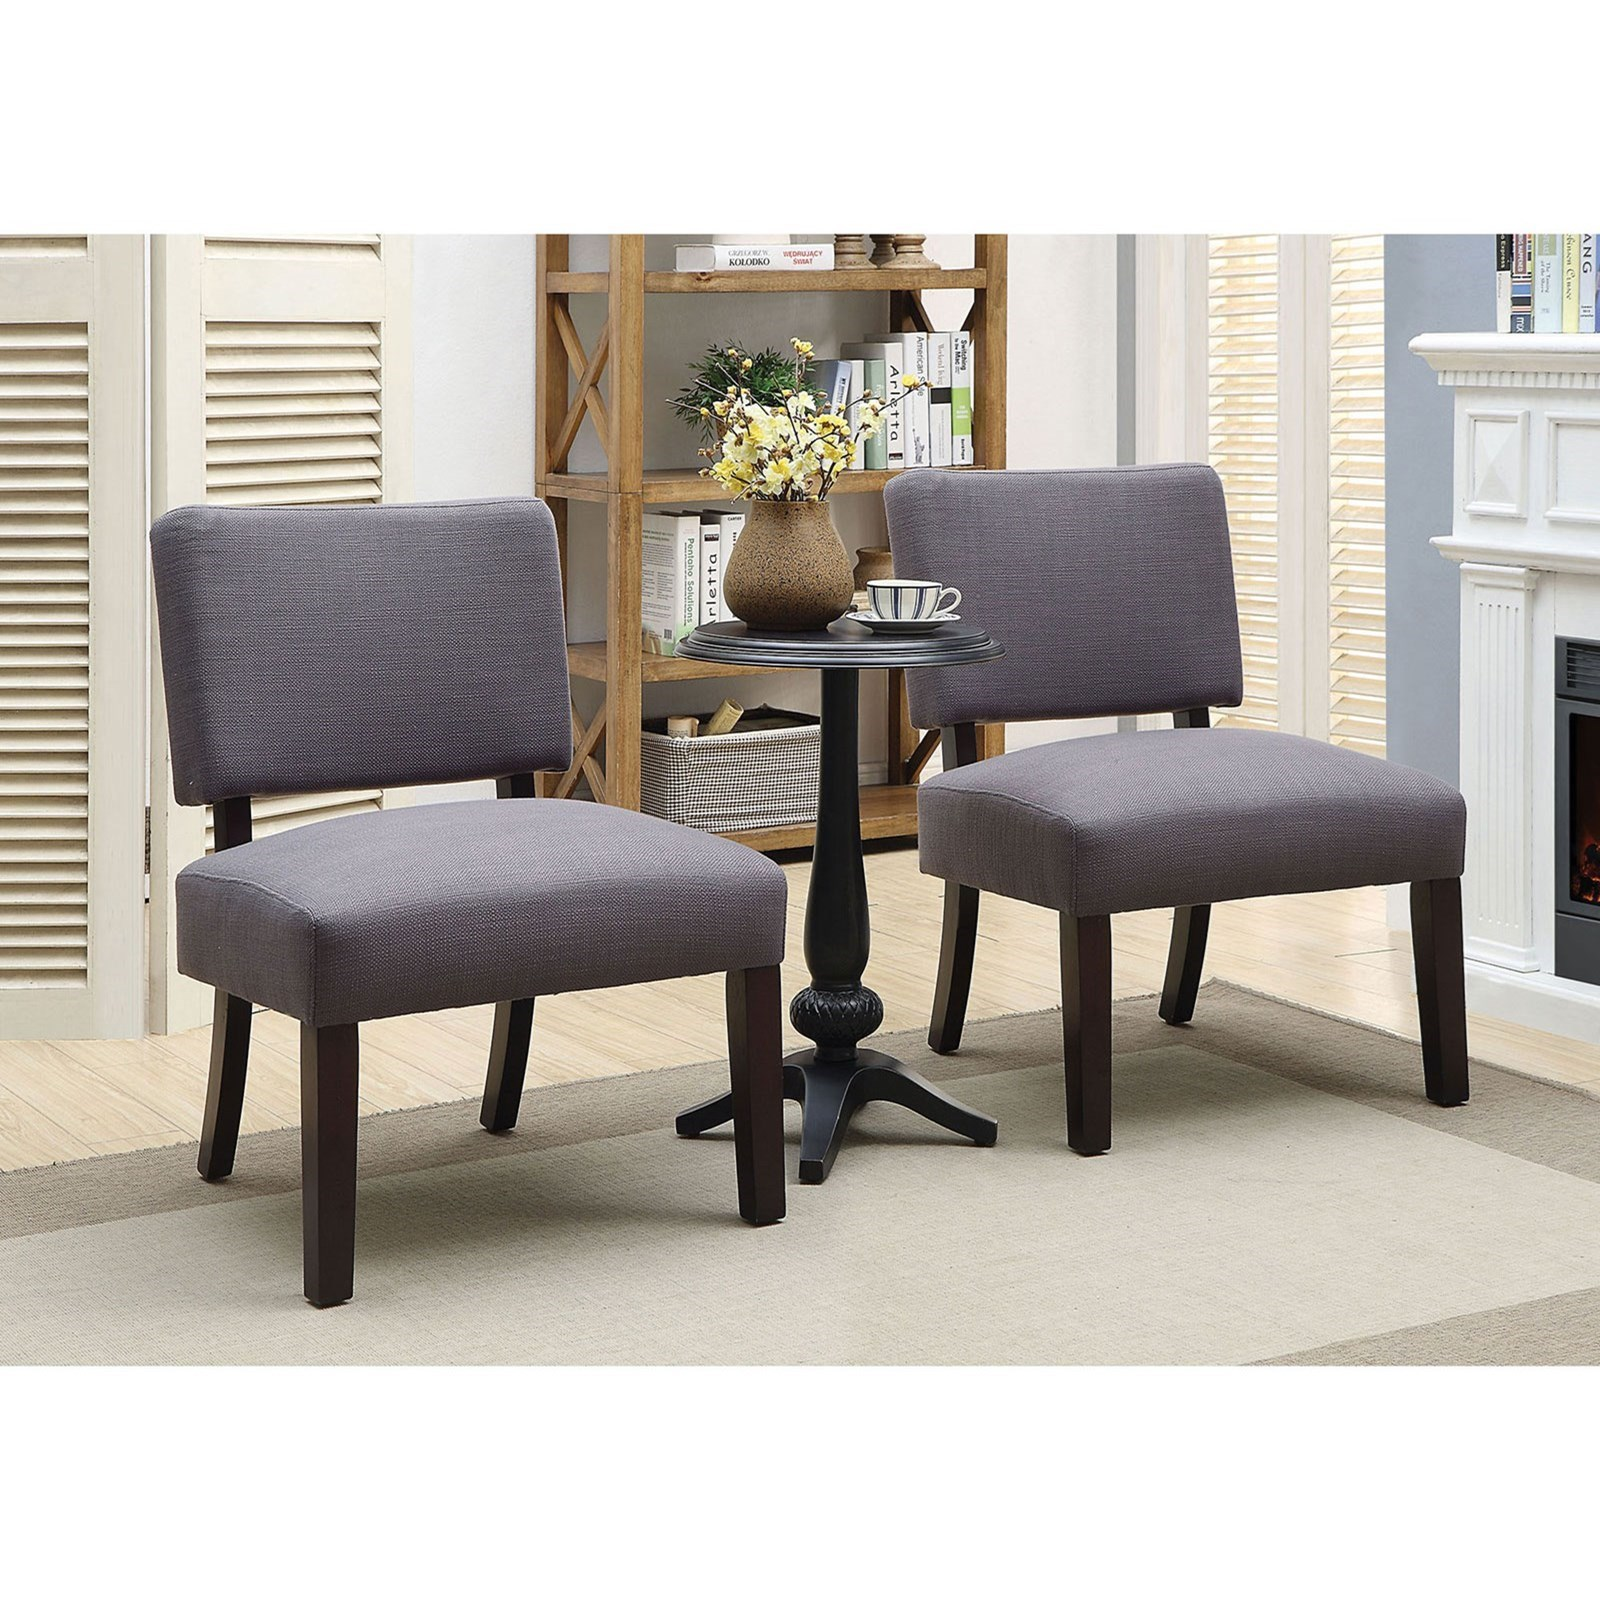 Arvid Accent Chair & Table Set by Furniture of America at Nassau Furniture and Mattress